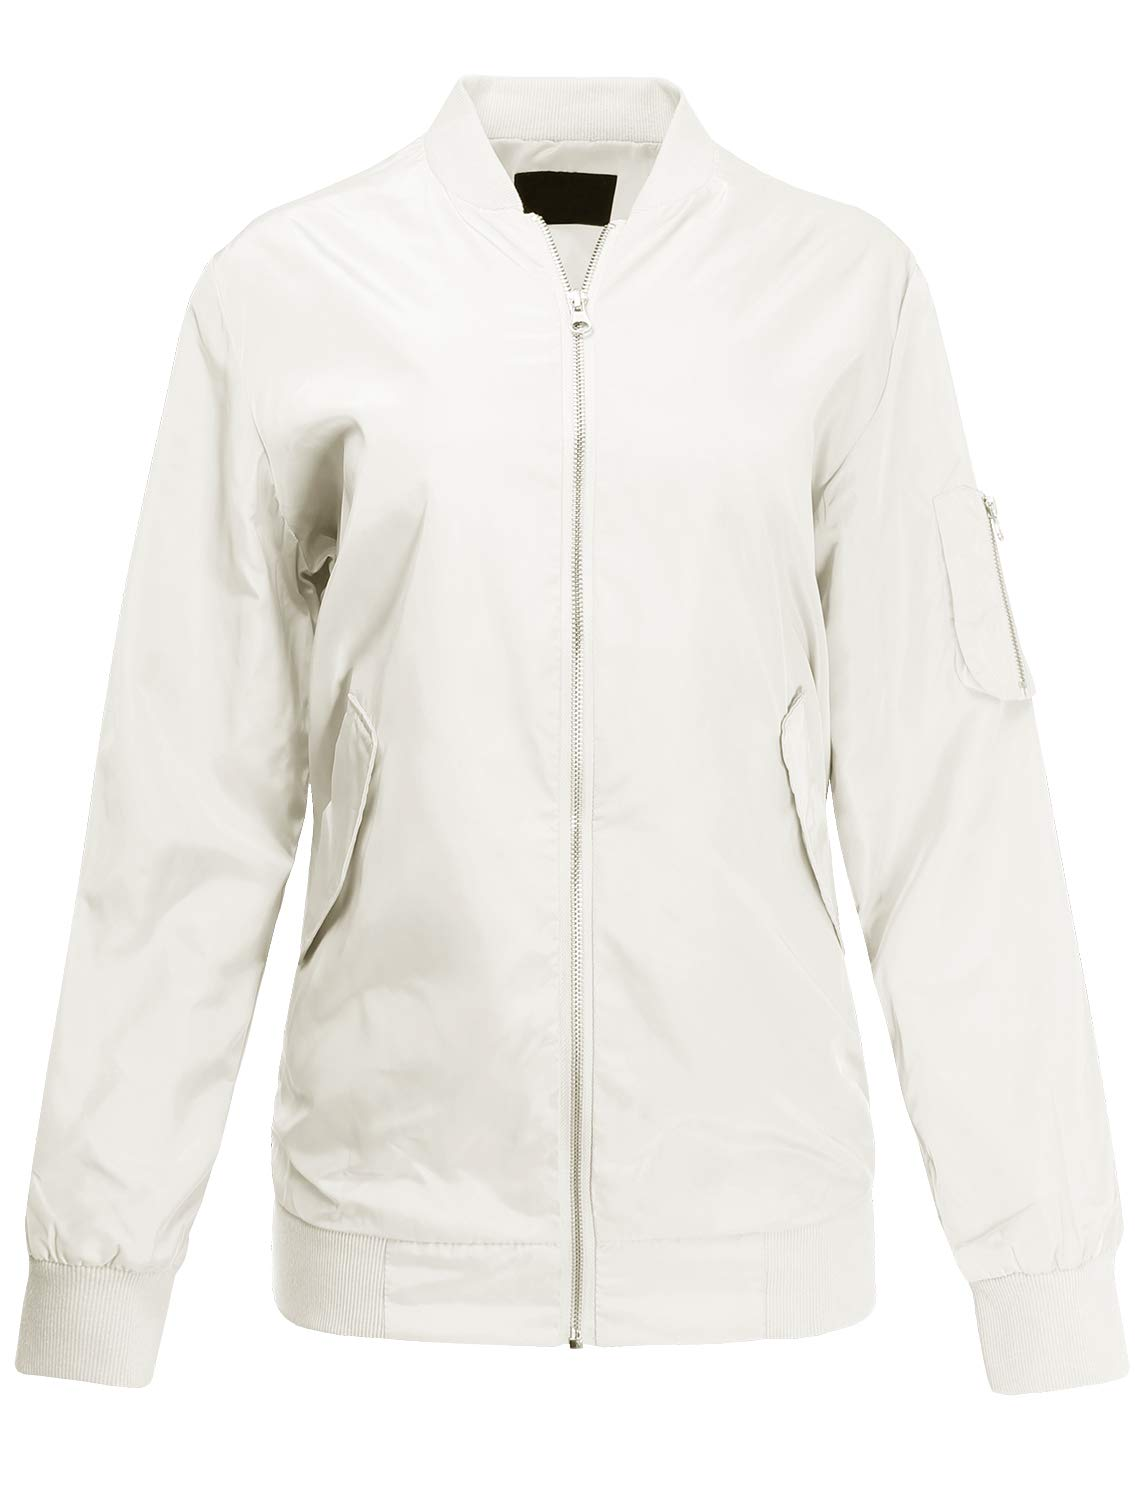 Ladies' Code Classic Style Light Weight Zip Up Long Line Bomber Jacket White S Size